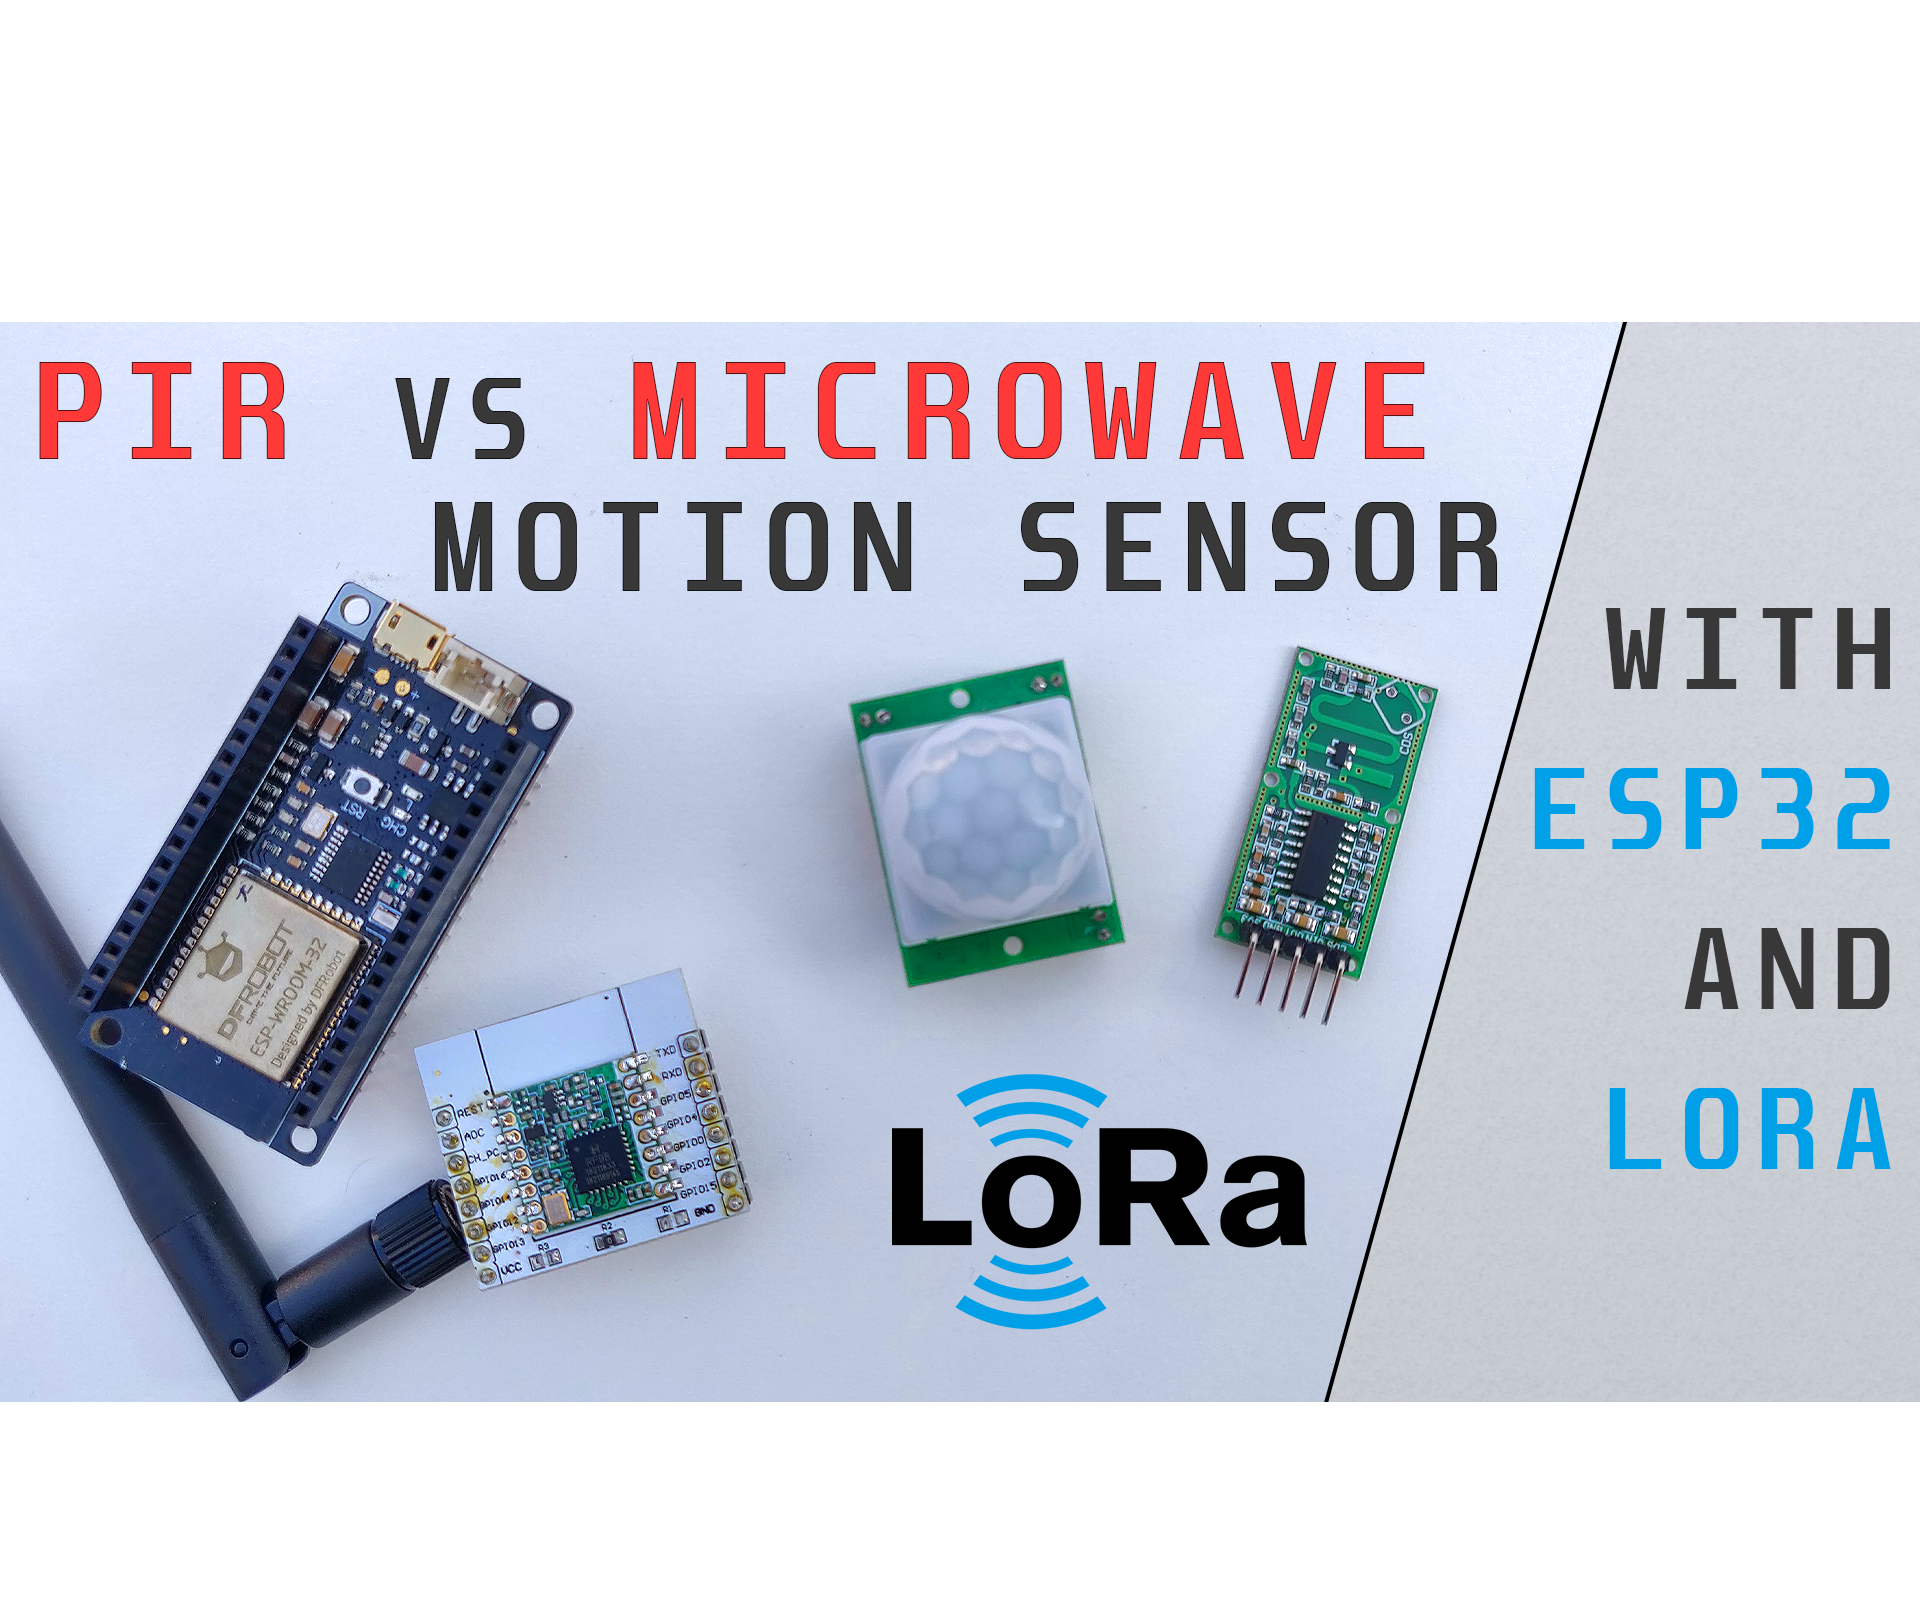 Microwave Vs PIR Motion Sensor With ESP32 & LoRa Project